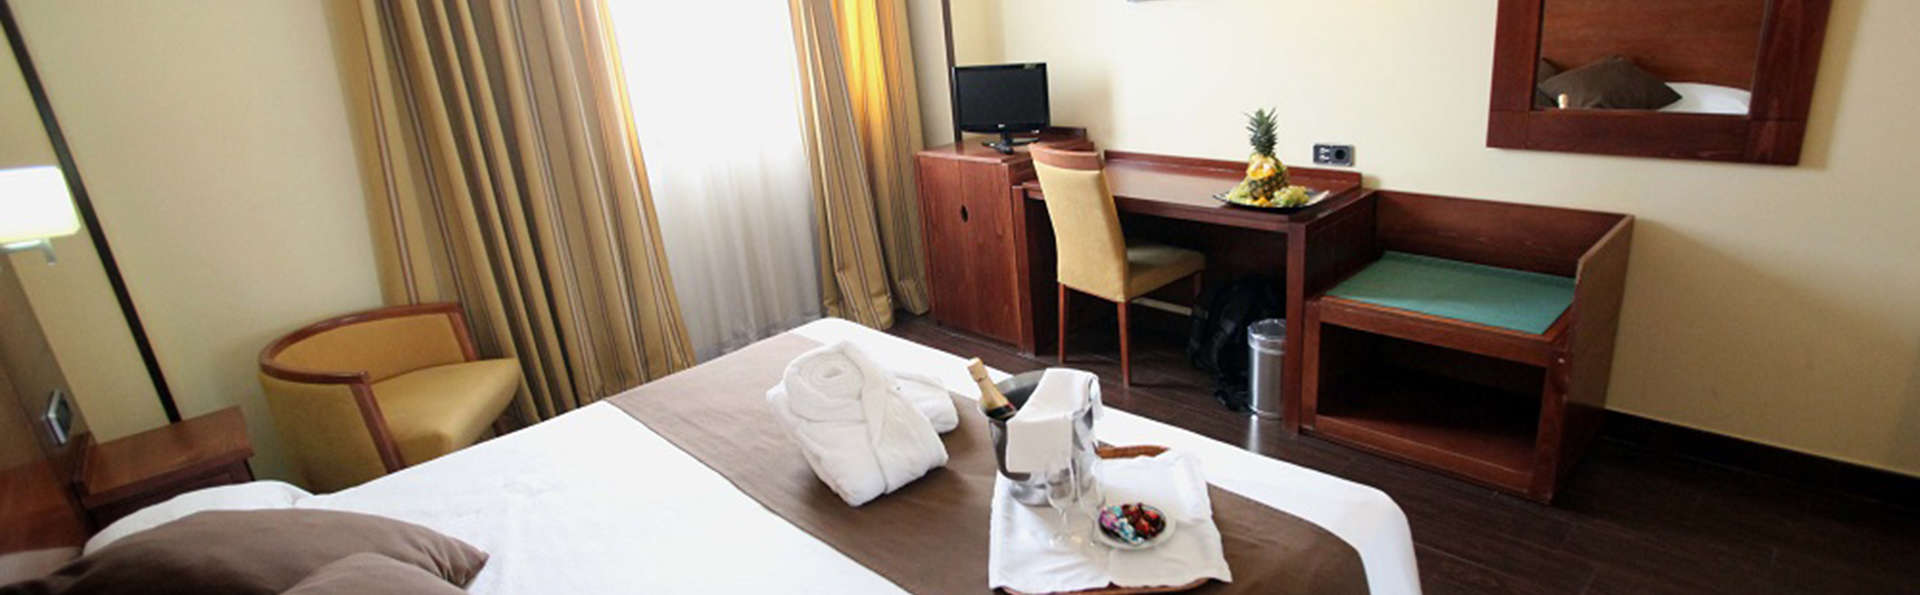 Hotel Hidalgo - EDIT_room2.jpg